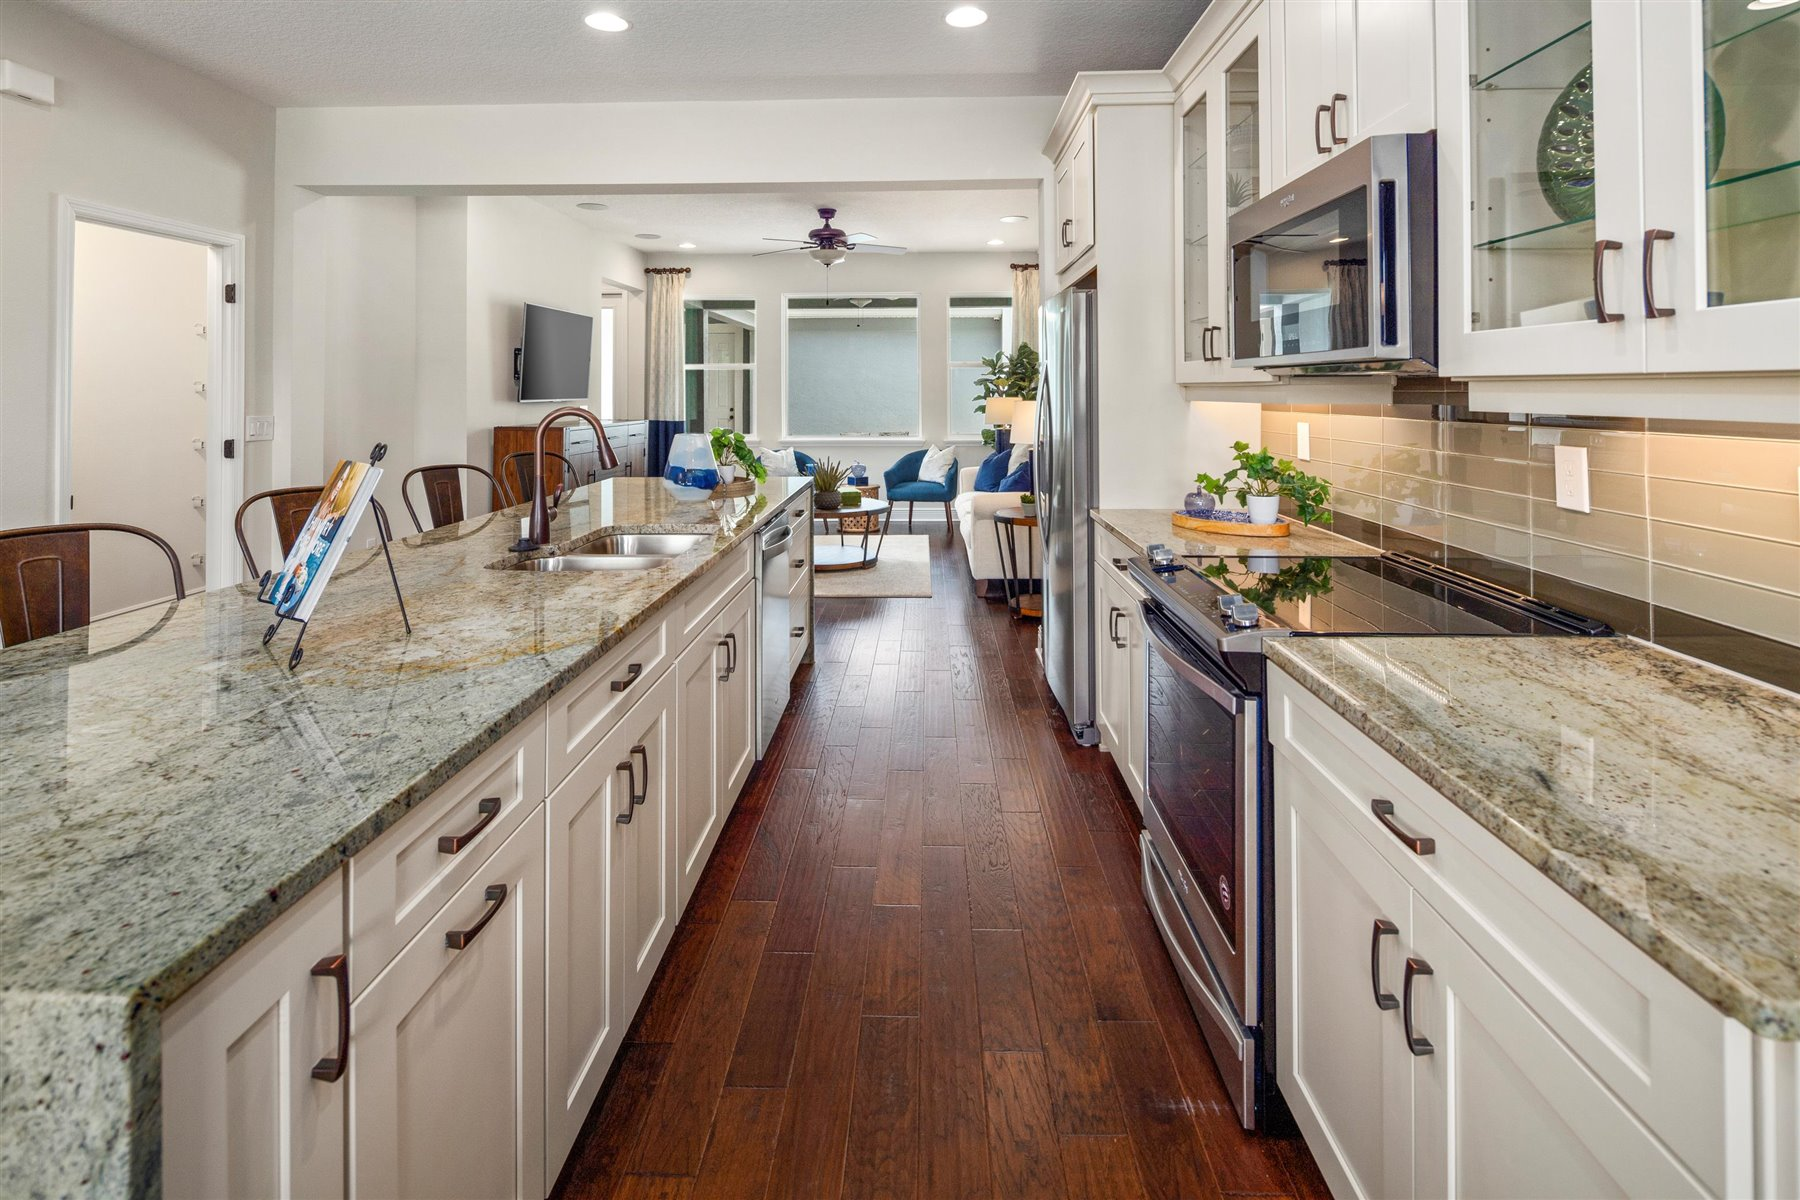 Arcadia Plan Kitchen at Hawksmoor in Winter Garden Florida by Mattamy Homes